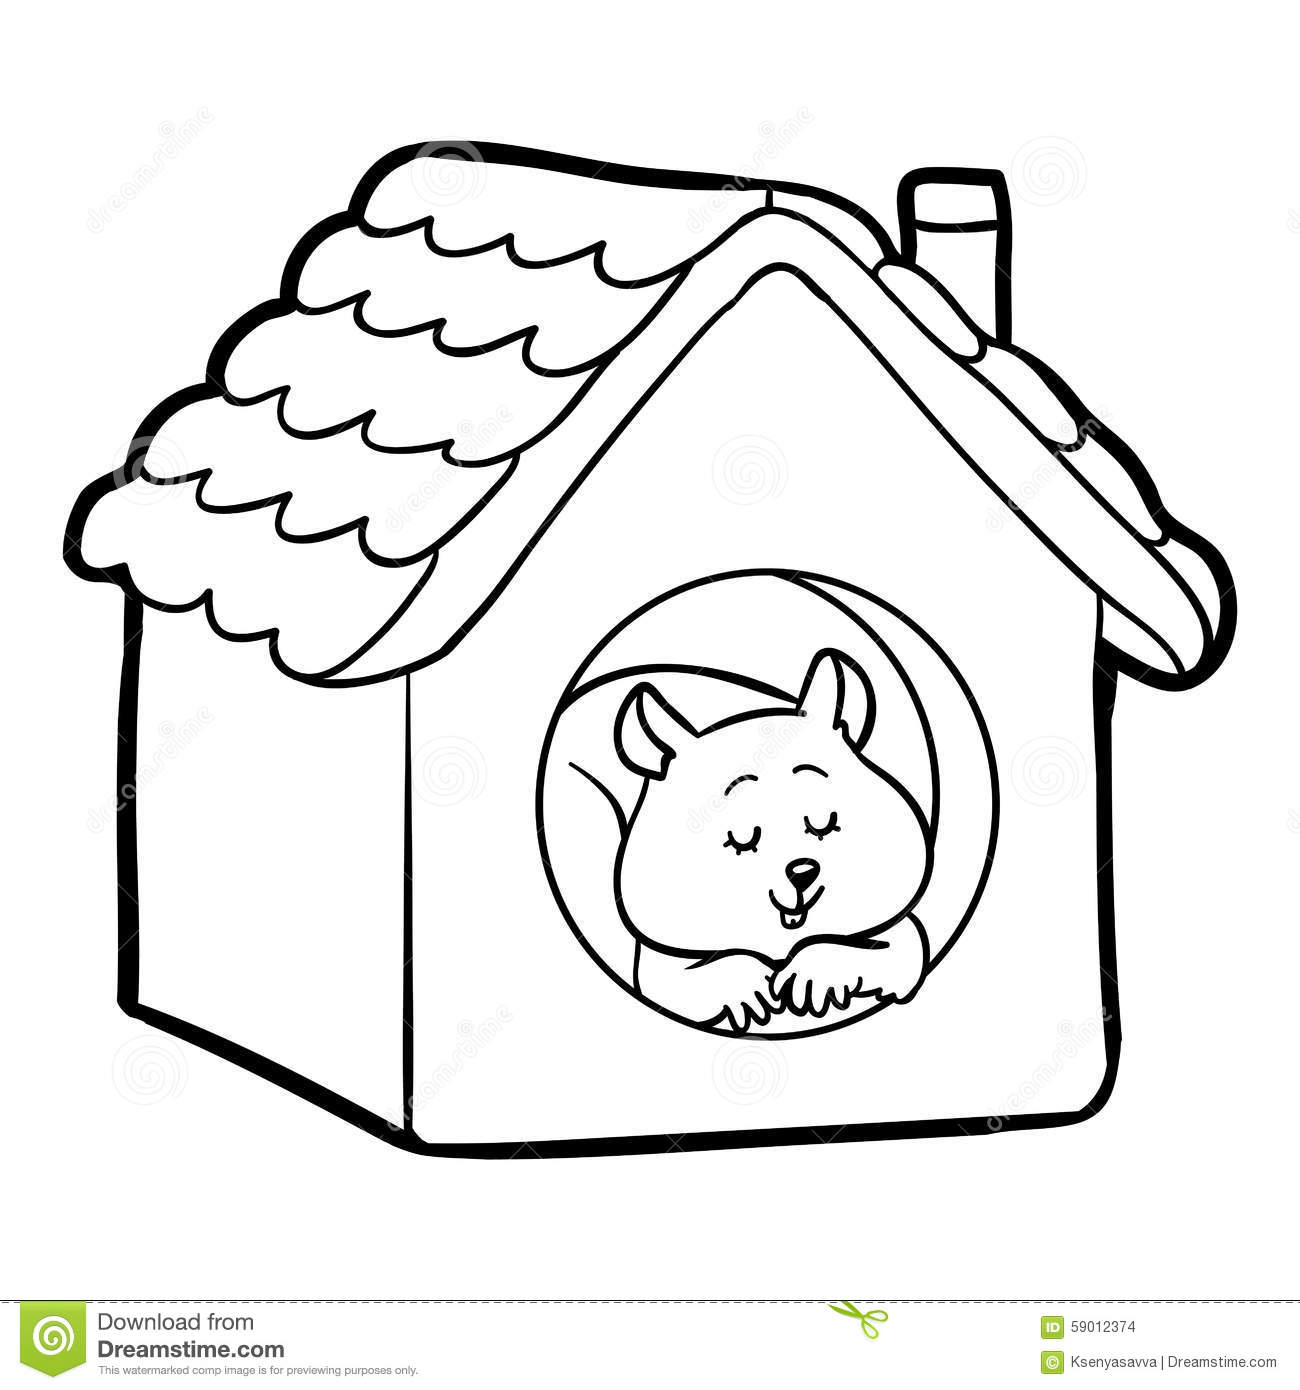 Coloring Book For Children Hamster And House Stock Vector